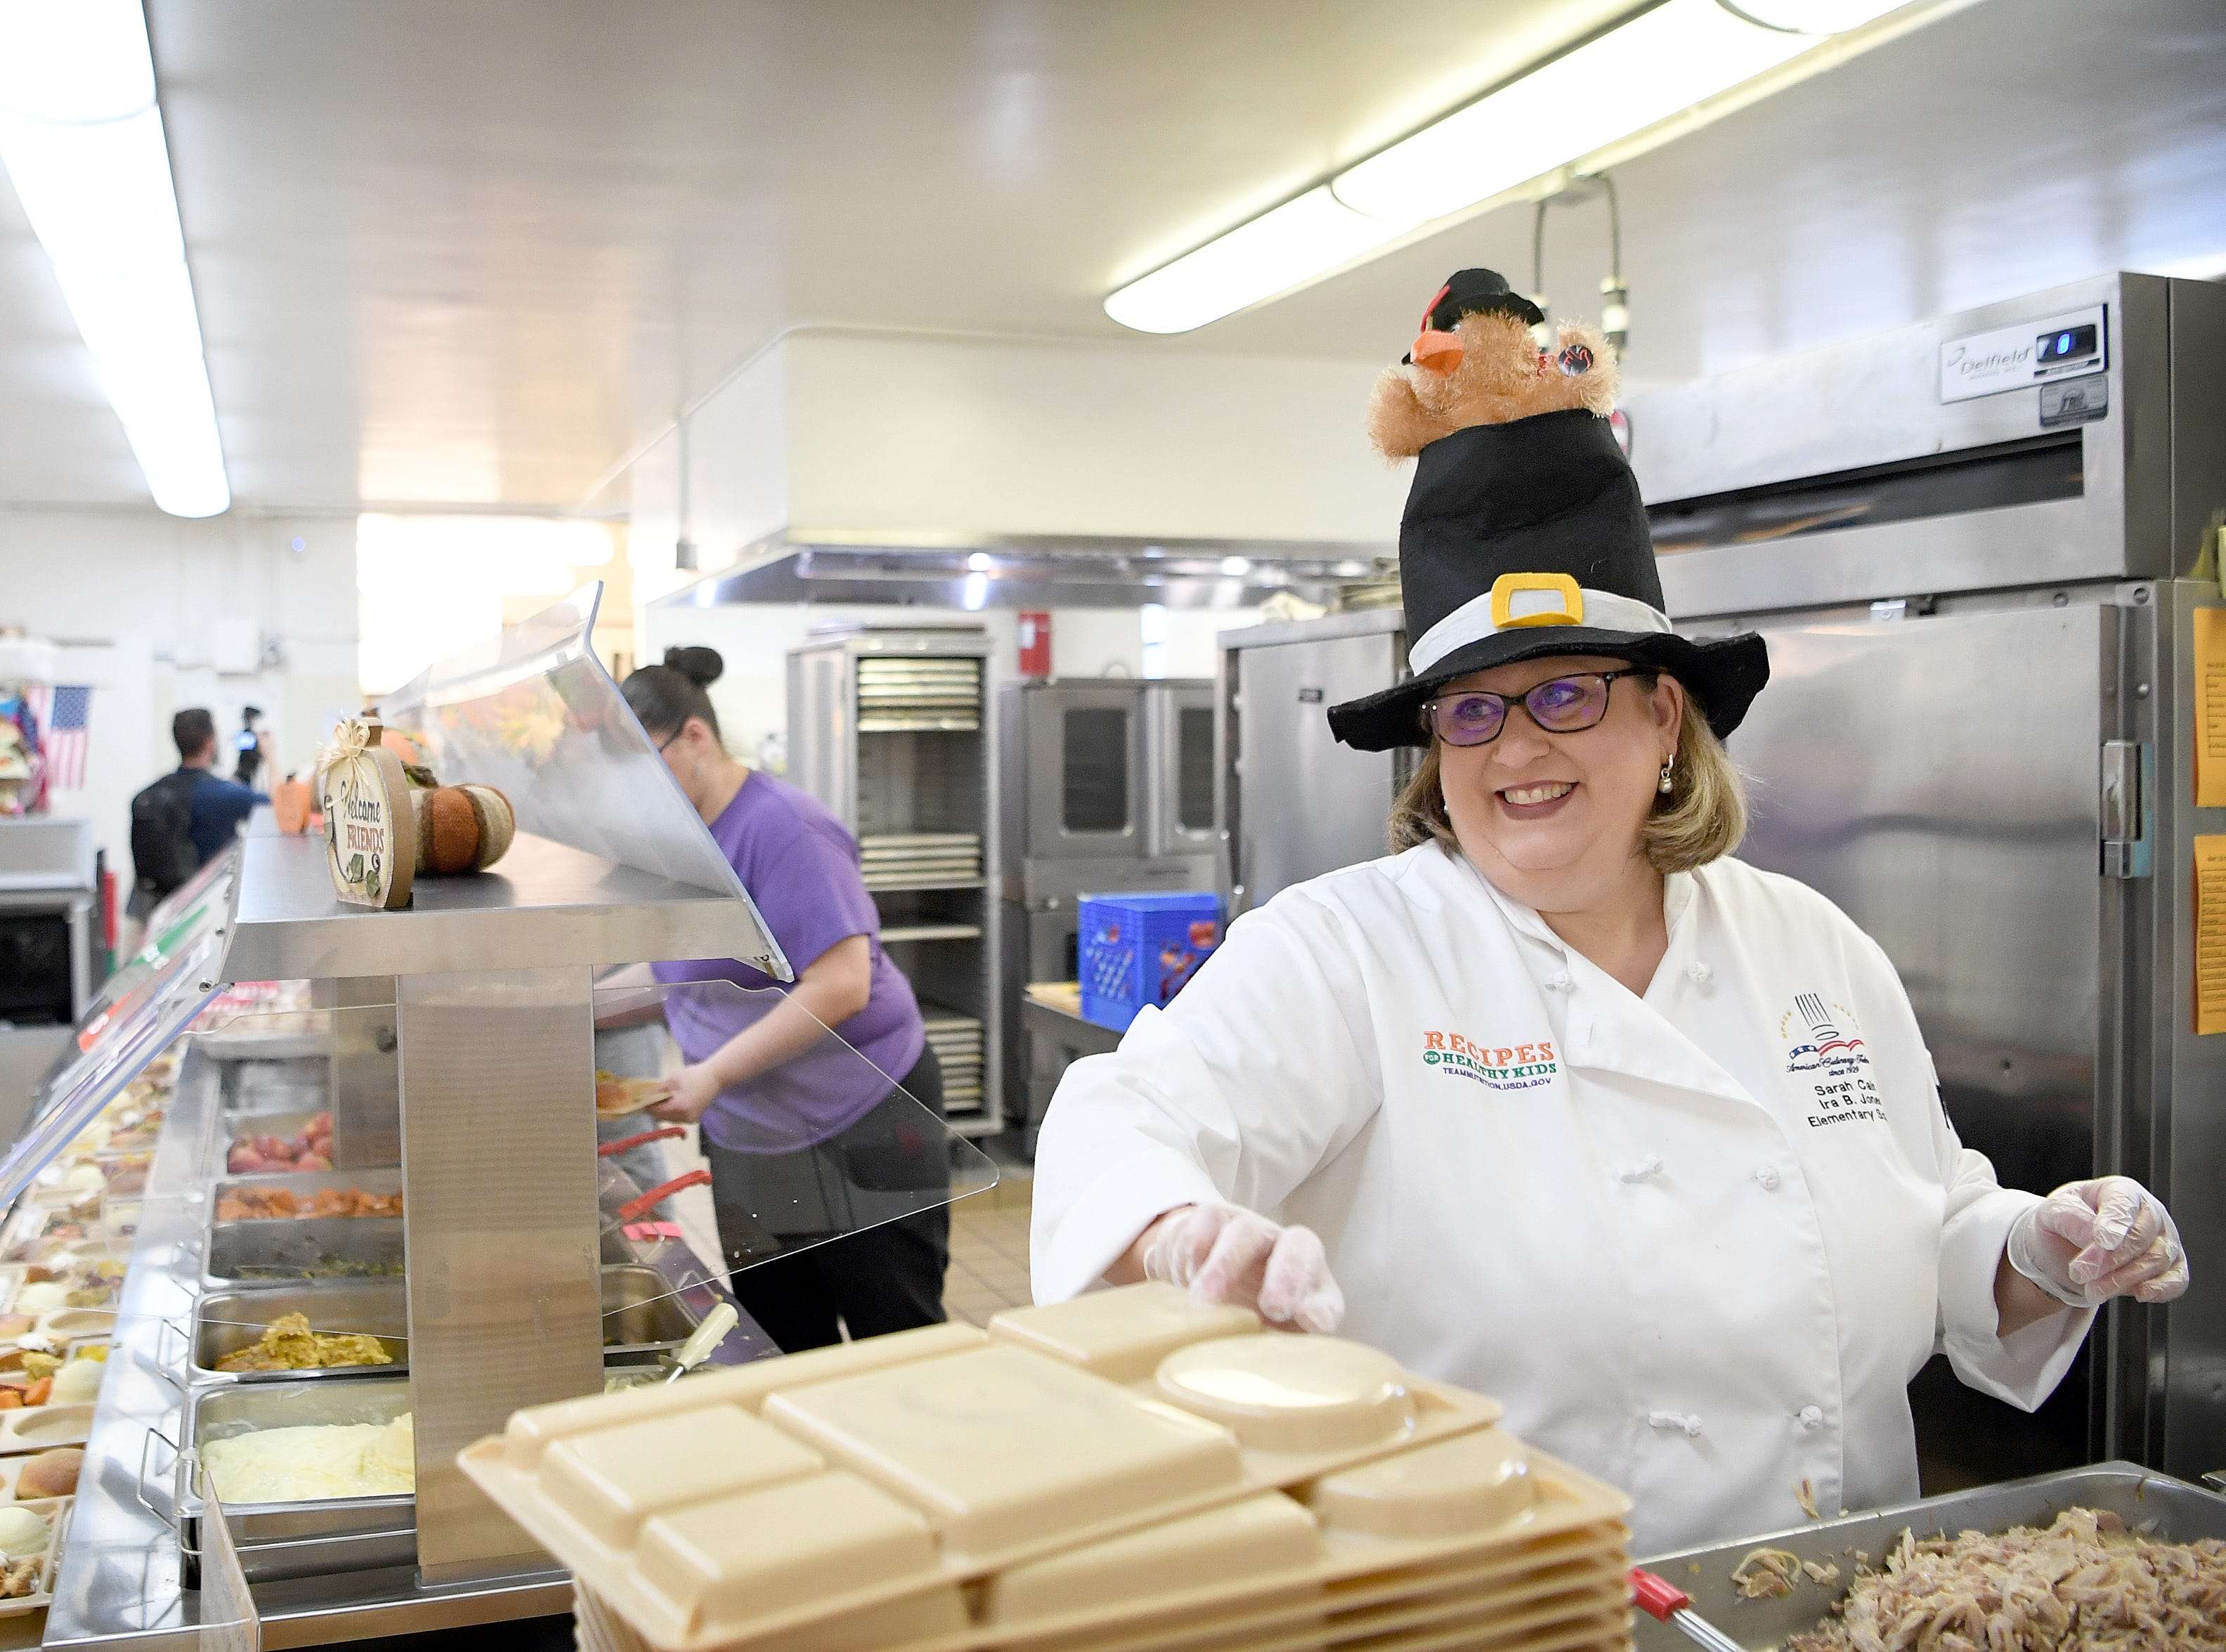 Sarah Cain, principal of Ira B. Jones Elementary School dons a festive hat as she helps serve lunch to her students and their parents during a Thanksgiving lunch at the elementary school on Nov. 14, 2018. Asheville City Schools served a special meal at all of their schools to celebrate the holiday.